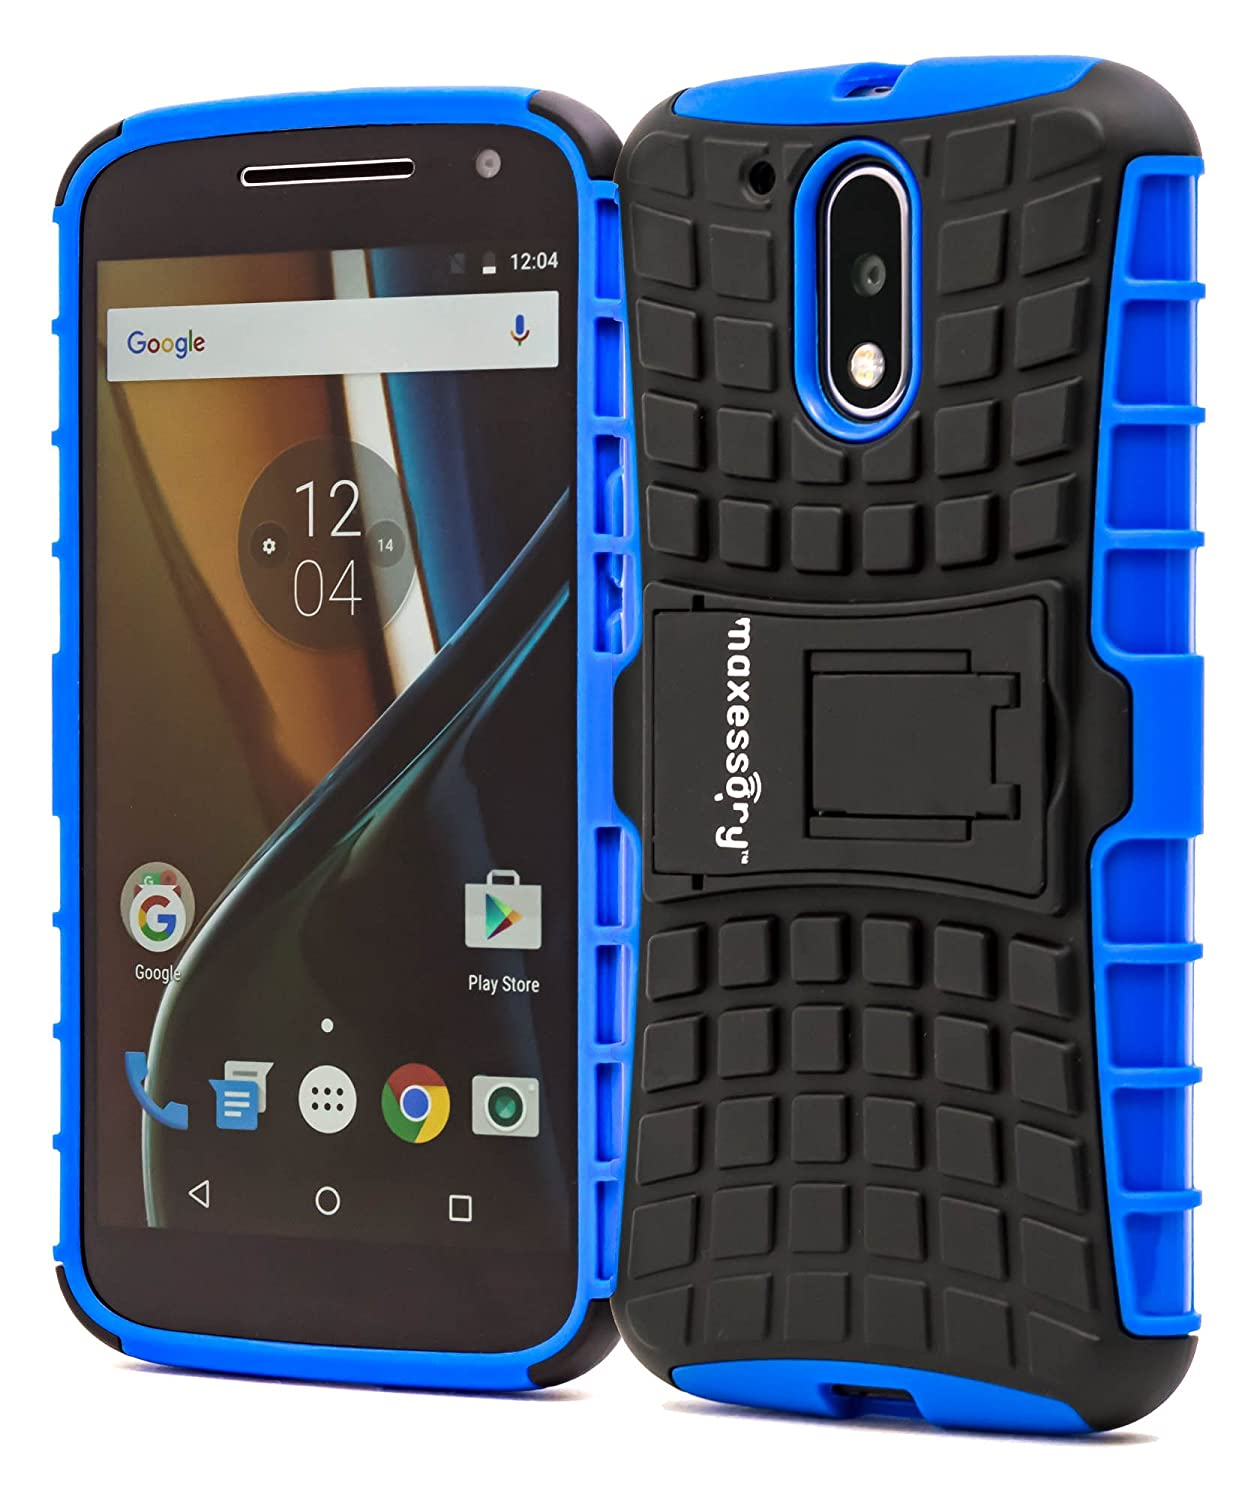 differently 7ec33 d0dd4 Motorola G4 Case, Moto G4 Plus Case, Maxessory Blue Offroad Shock-Proof  Rugged Dual-Layer Armor Rigid Ultra-Slim Kickstand Protective Hard Tough ...